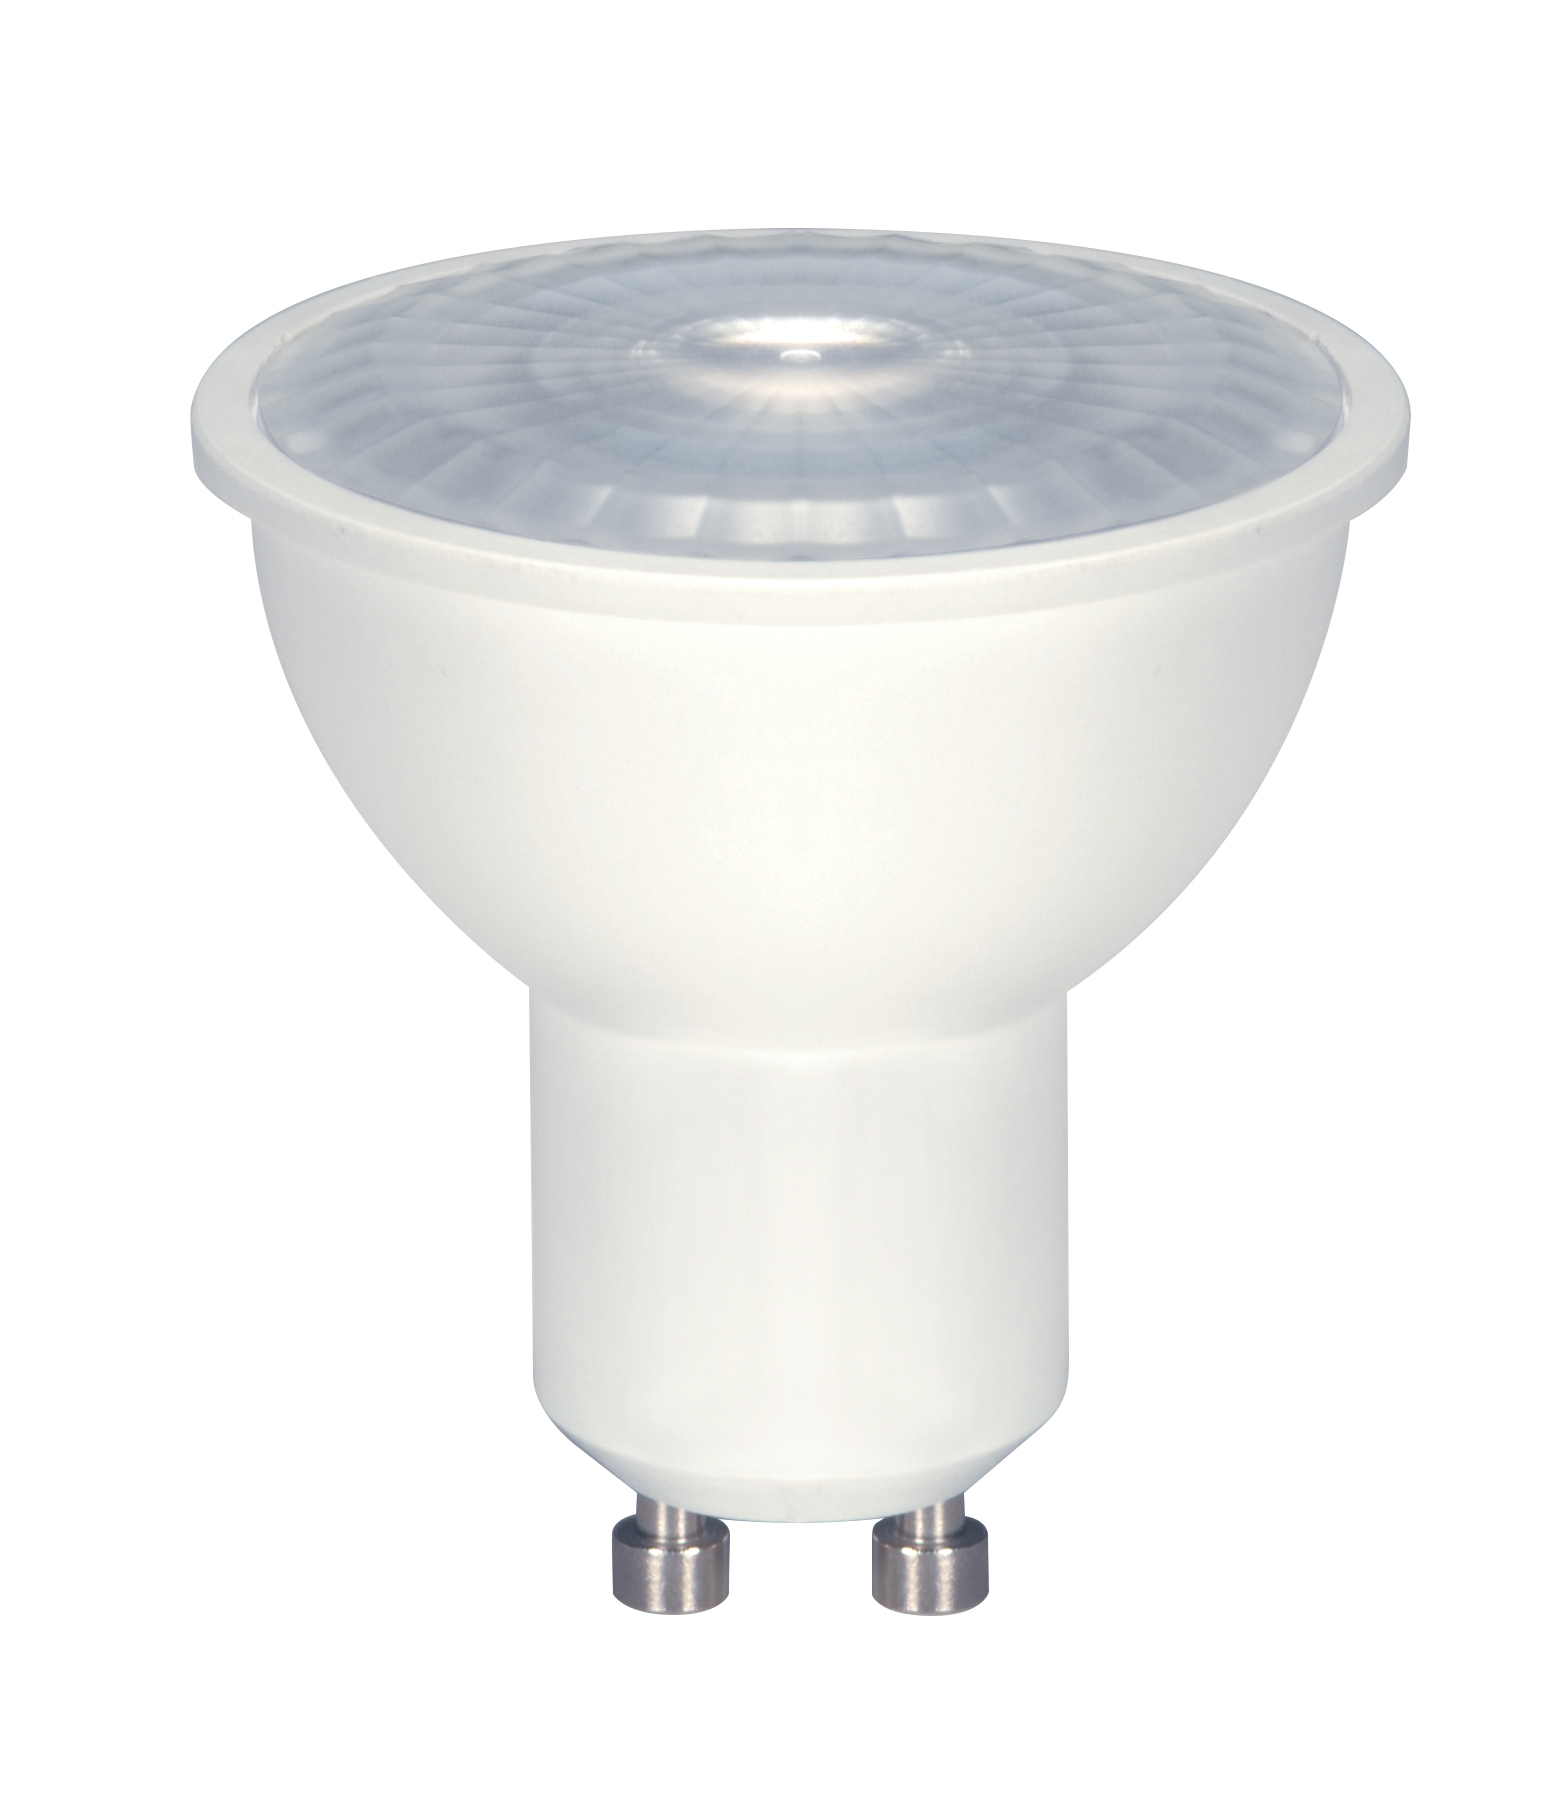 SATS9385 6.5W 120V LED LAMP, SATCO